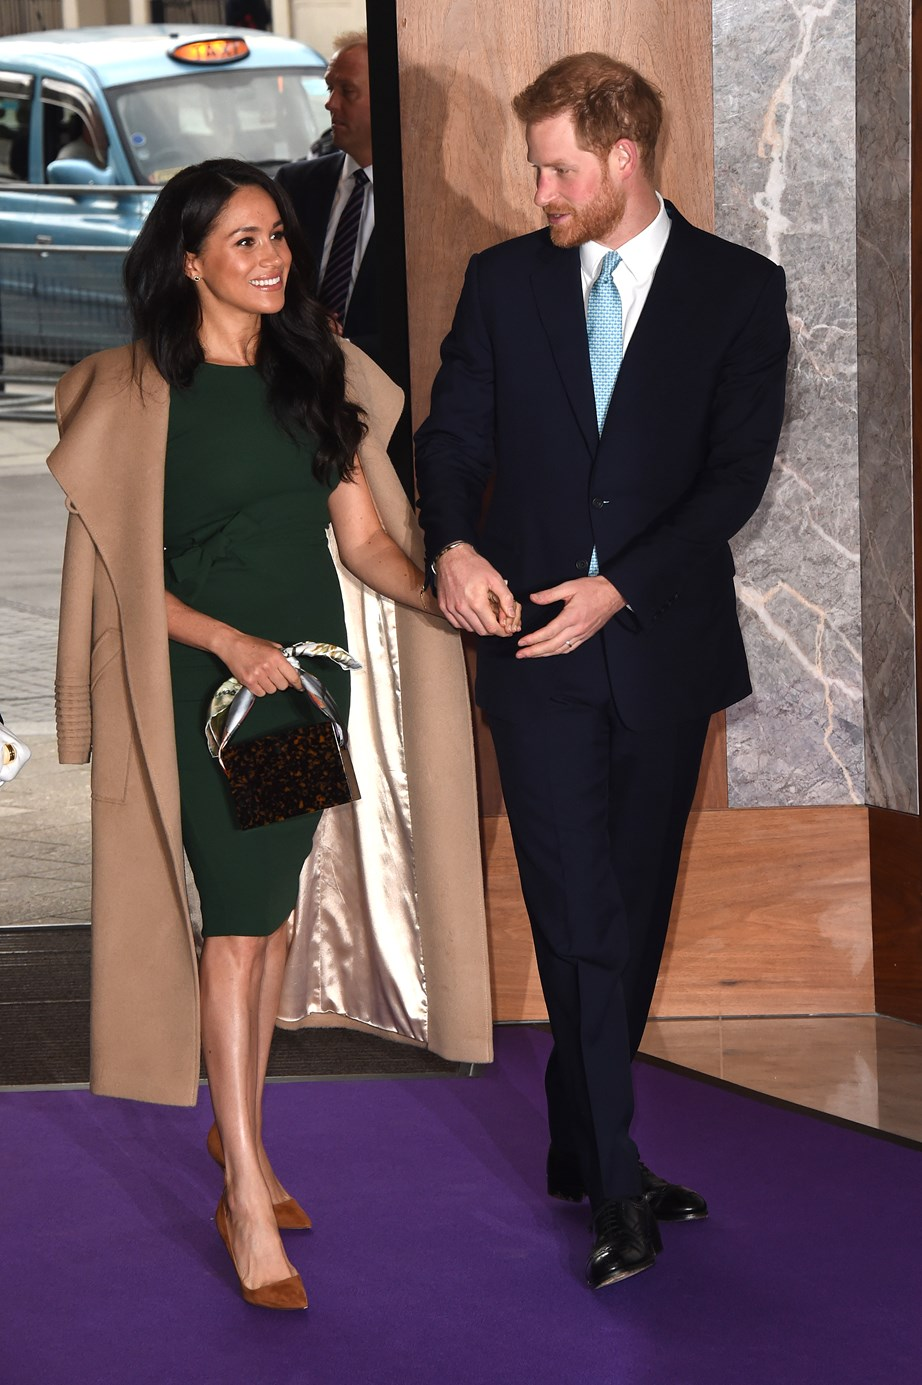 Meghan and Harry arrive hand-in-hand for the annual WellChild Awards in London. *(Image: Getty)*